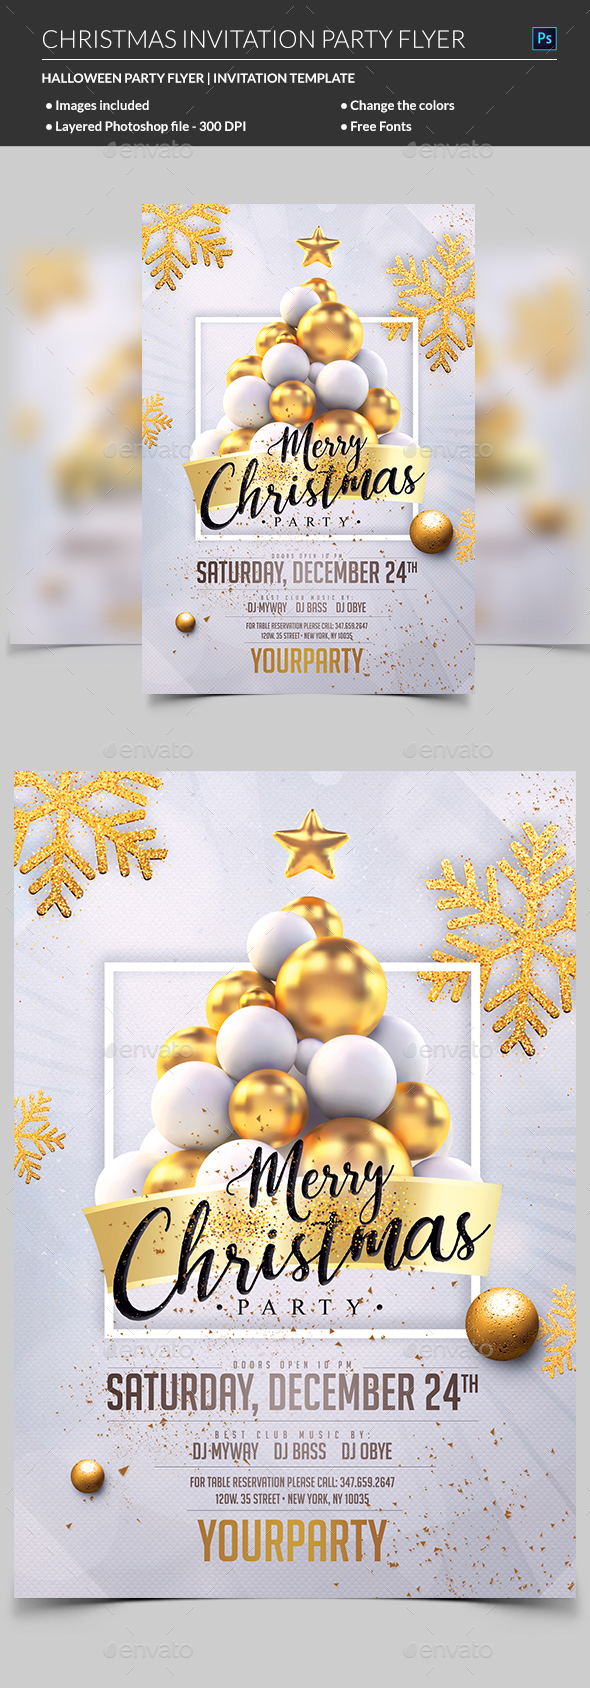 Christmas Party Invitation - Holidays Events